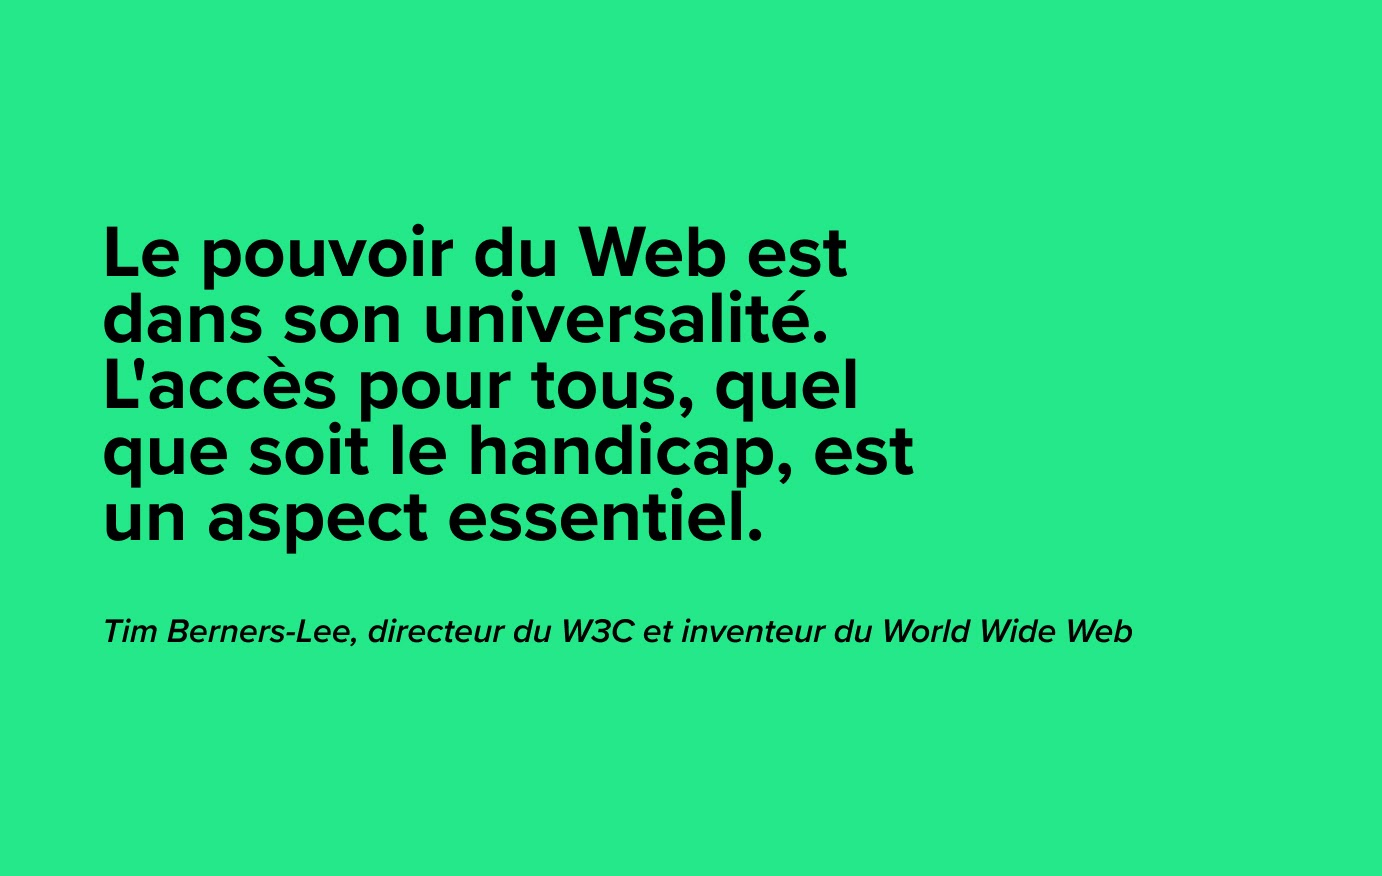 citation de Tim Berners-Lee sur l'accessibilité web